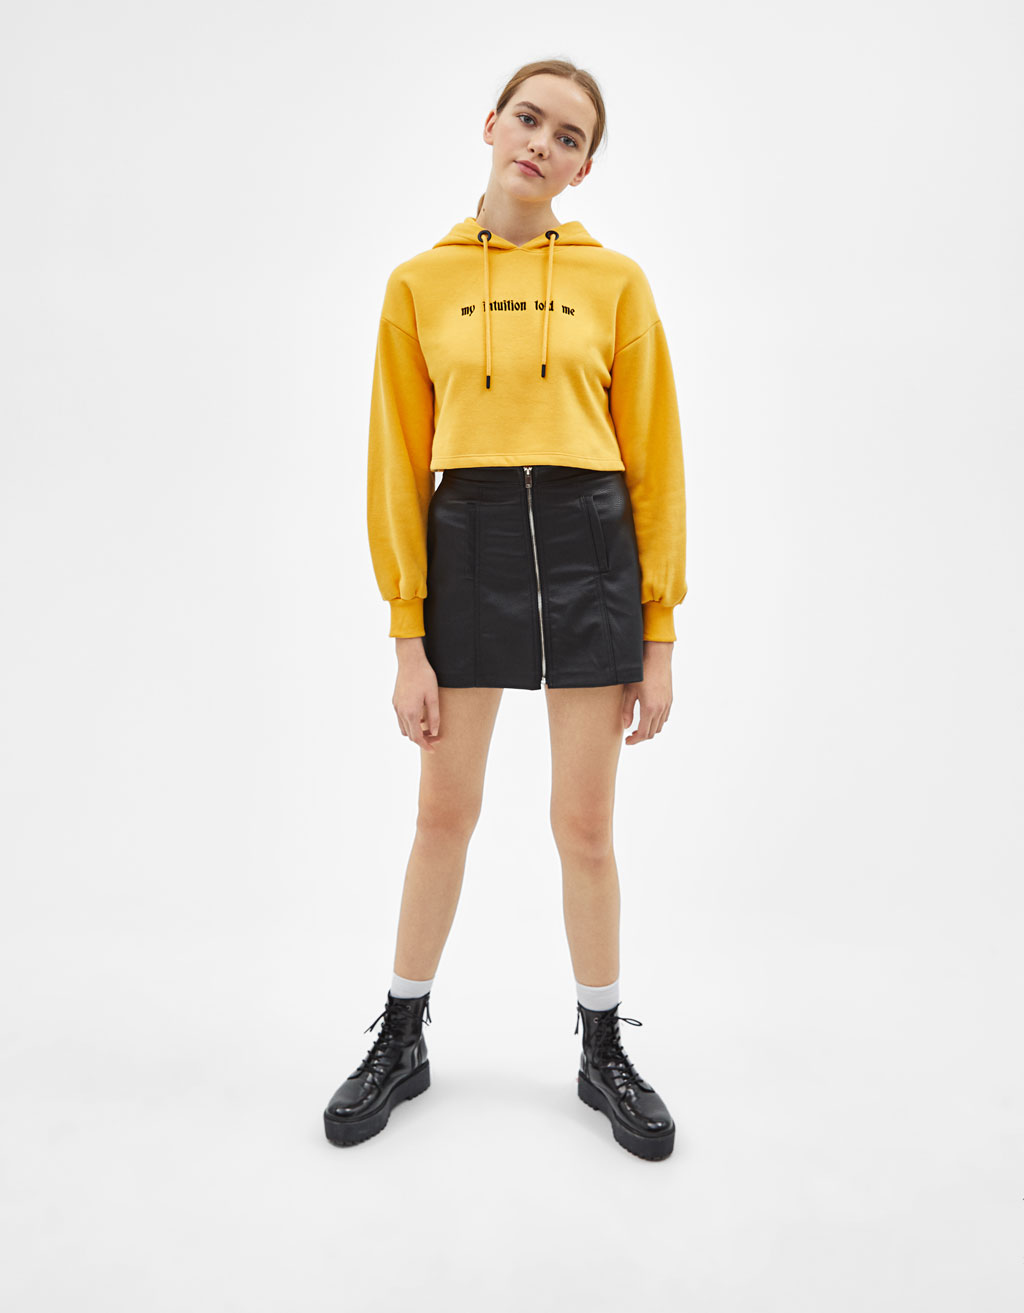 Cropped-Sweatshirt mit Stickerei